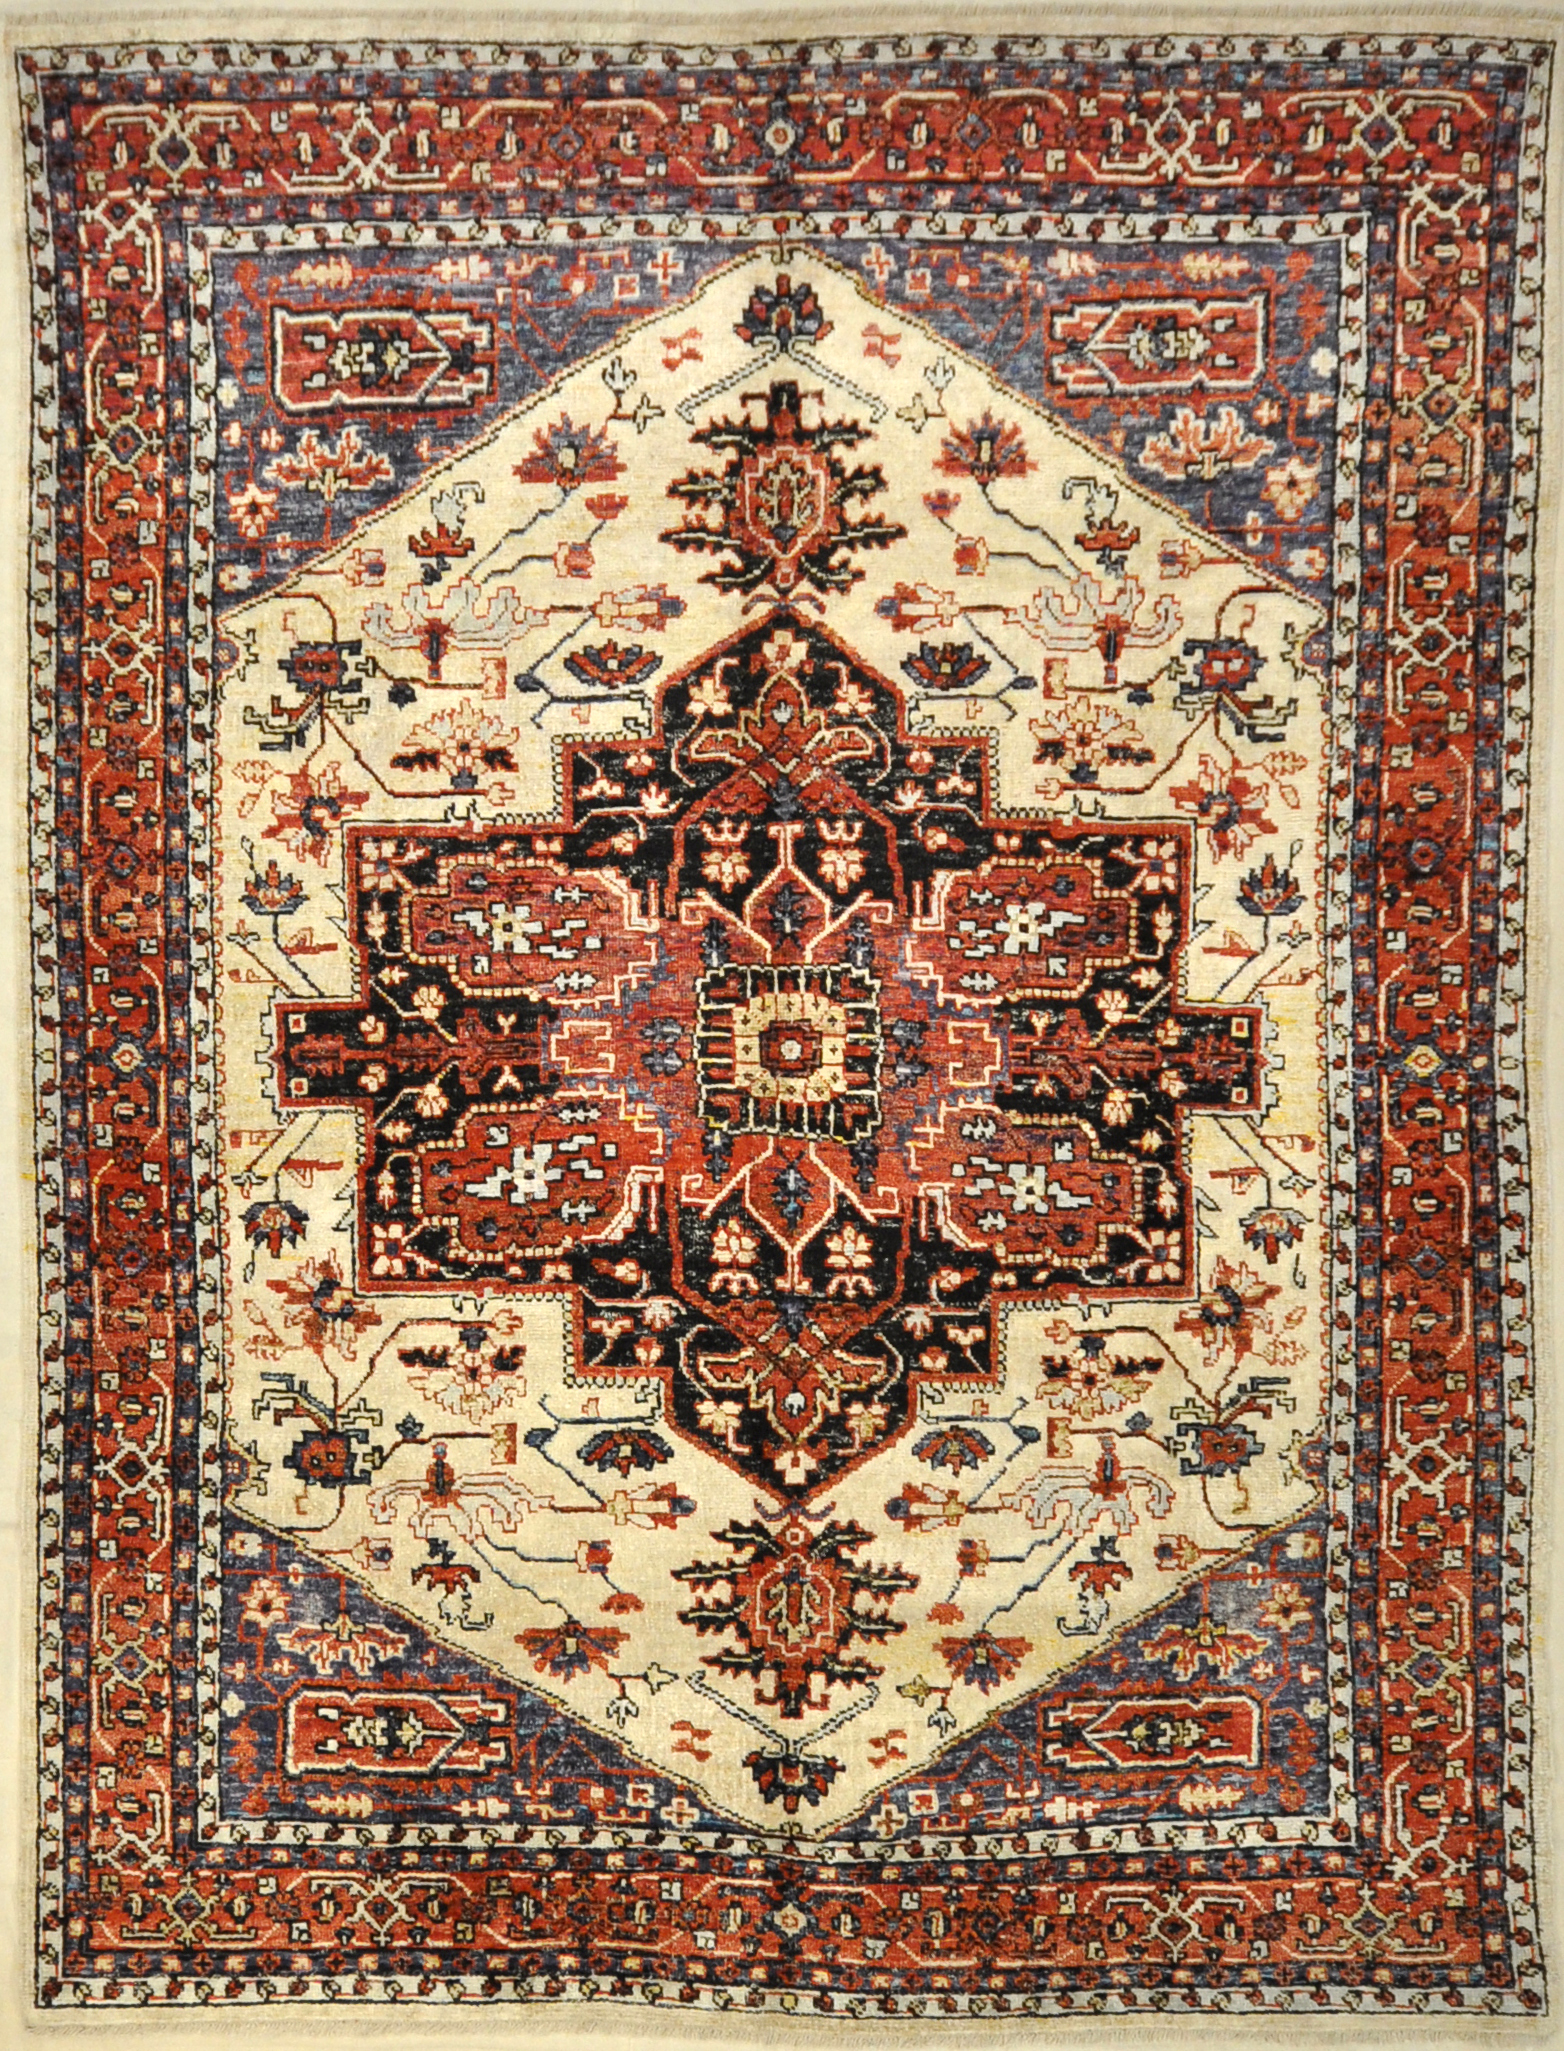 Saree Silk Indian Rug. A piece of genuine woven authentic carpet art sold by Santa Barbara Design Center and Rugs and More.